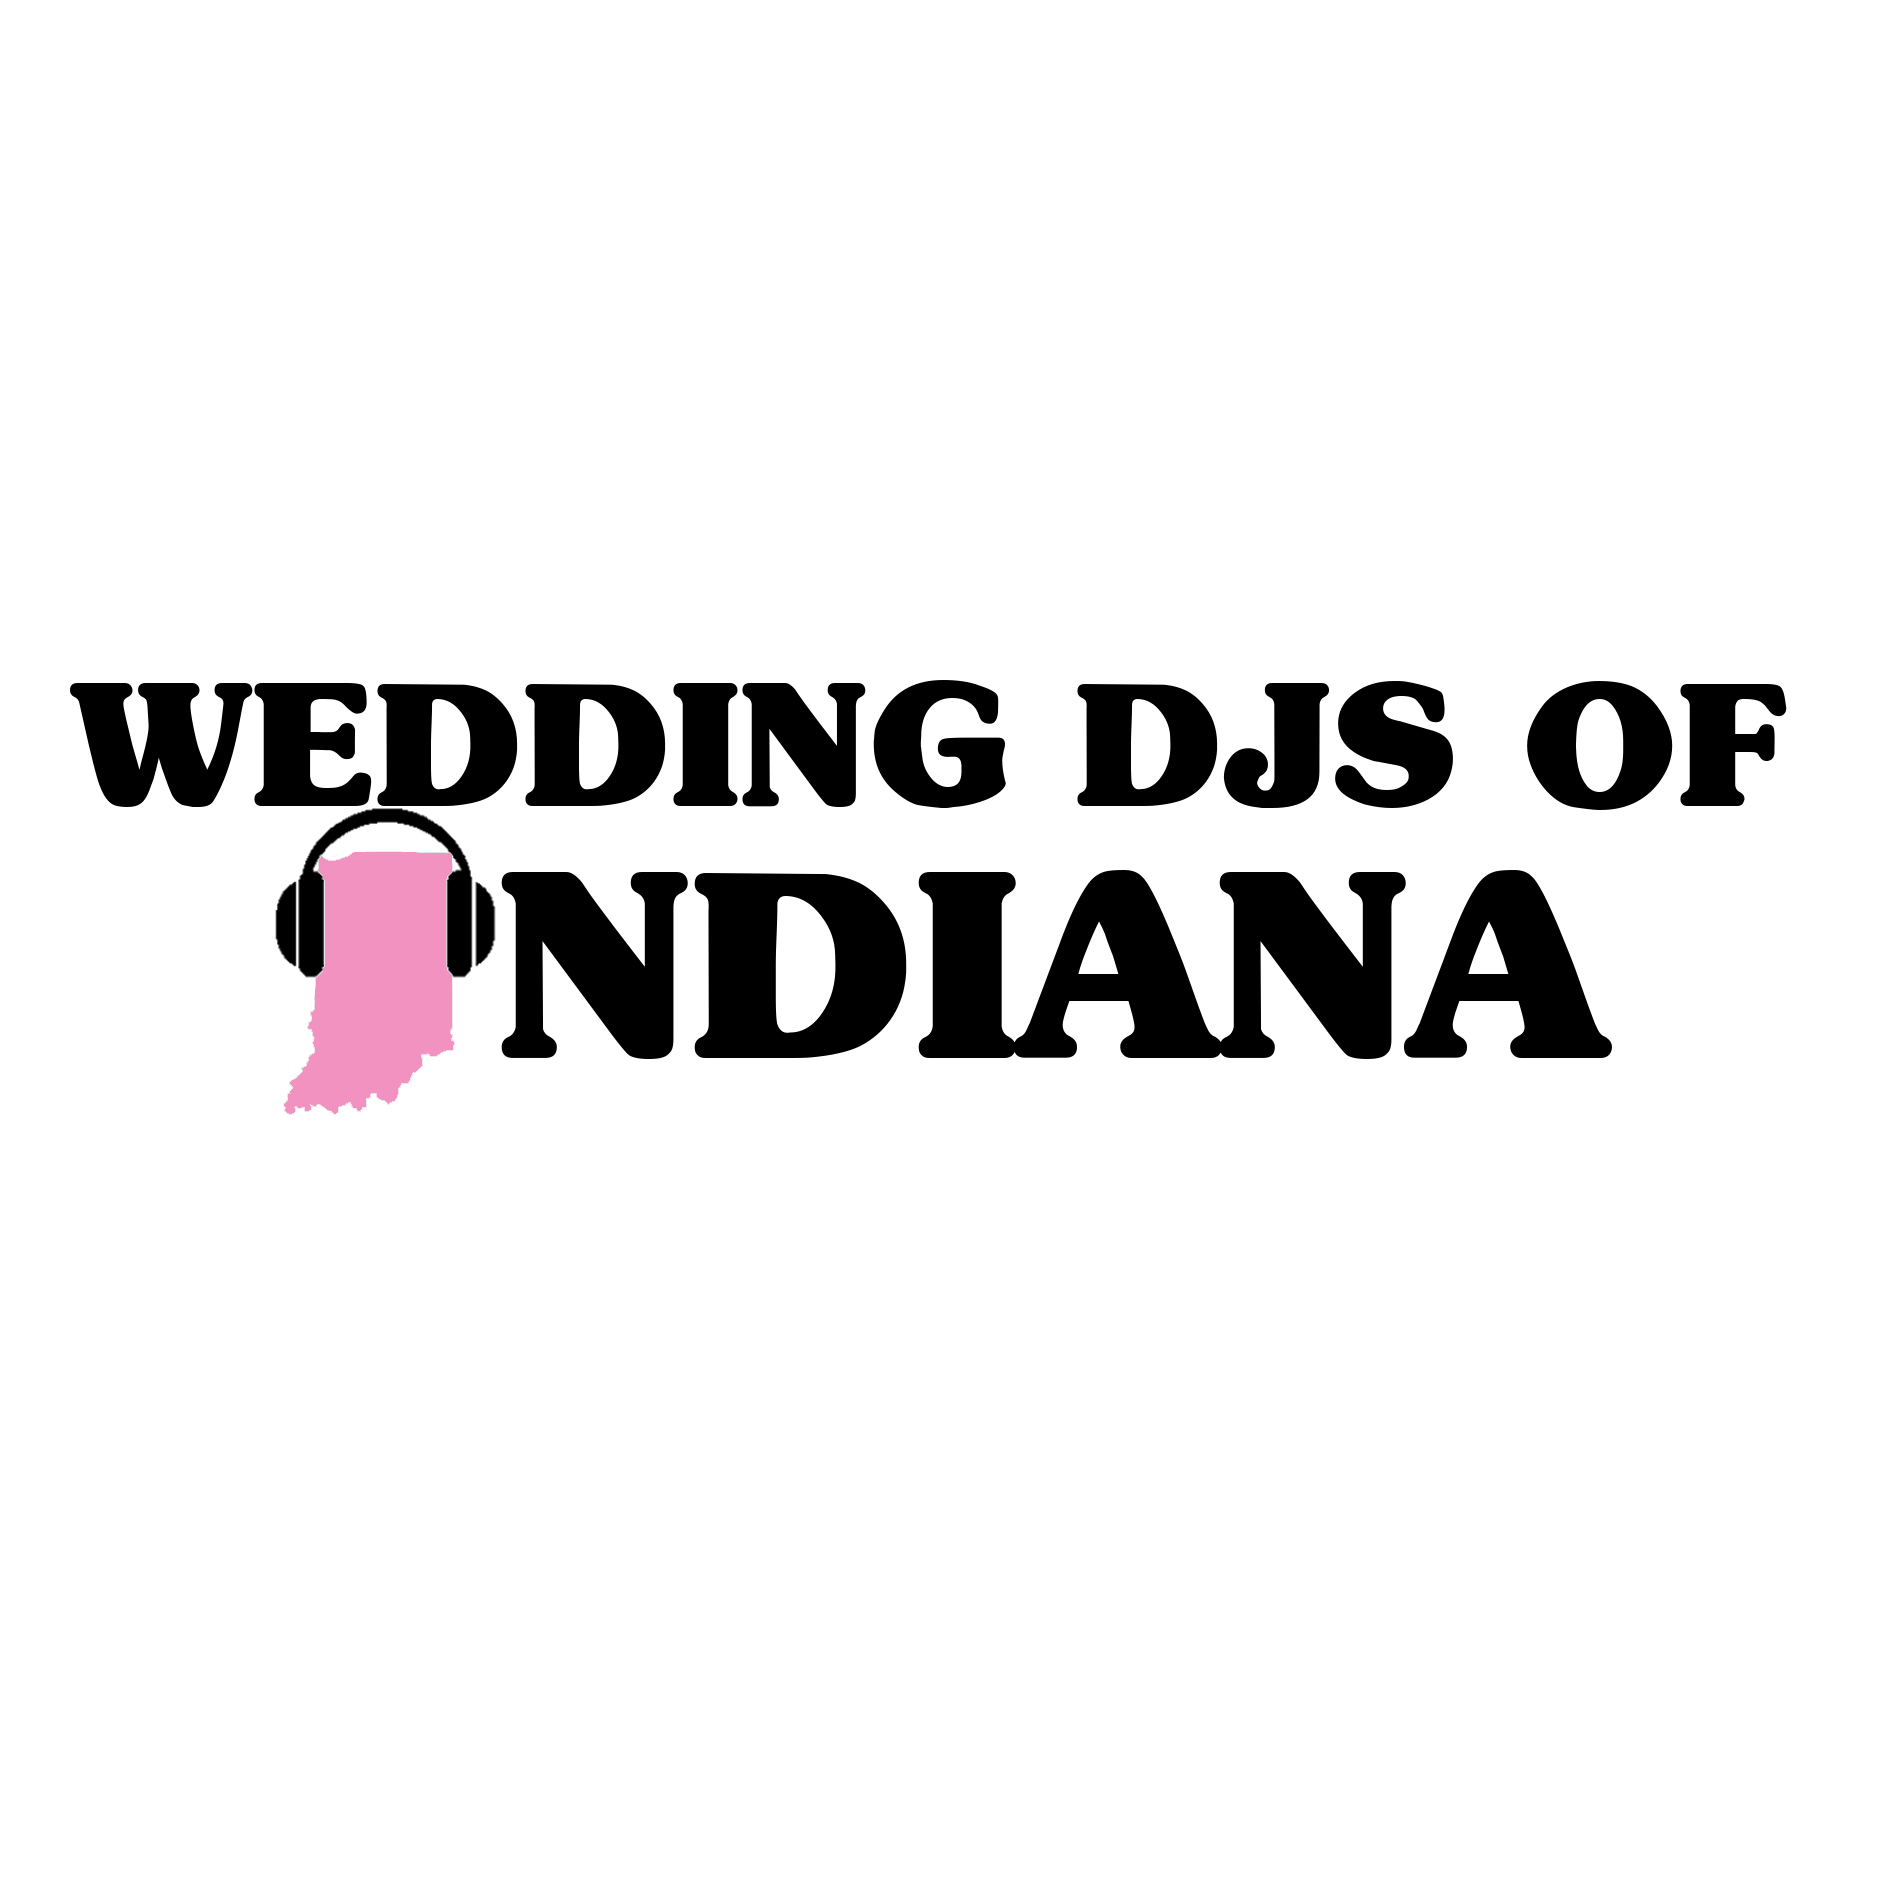 Wedding DJs Of Indiana - Indiana's Professional DJs